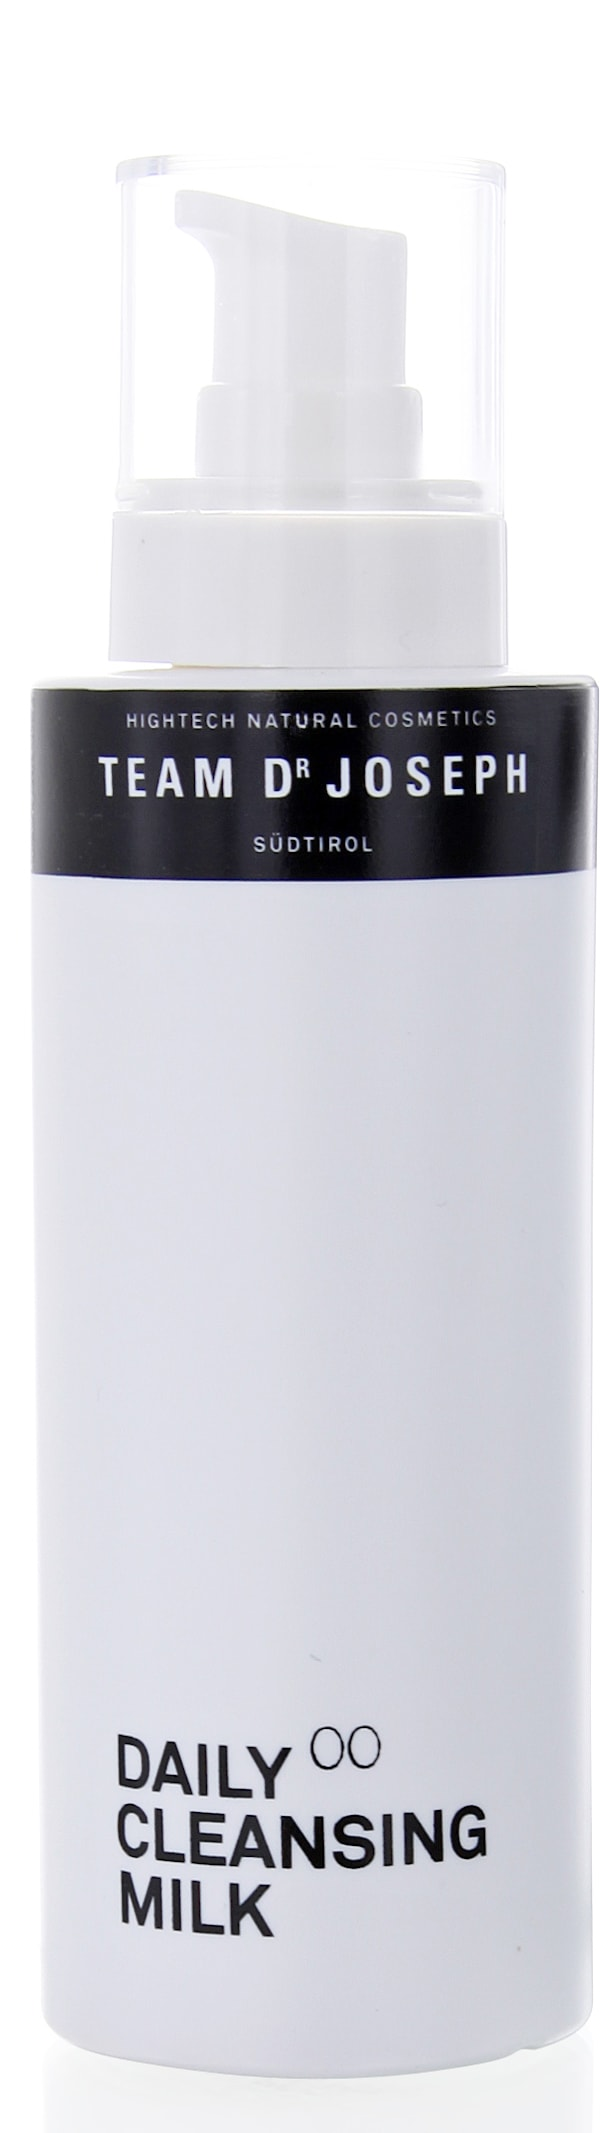 Daily Cleansing Milk von Team Dr. Joseph